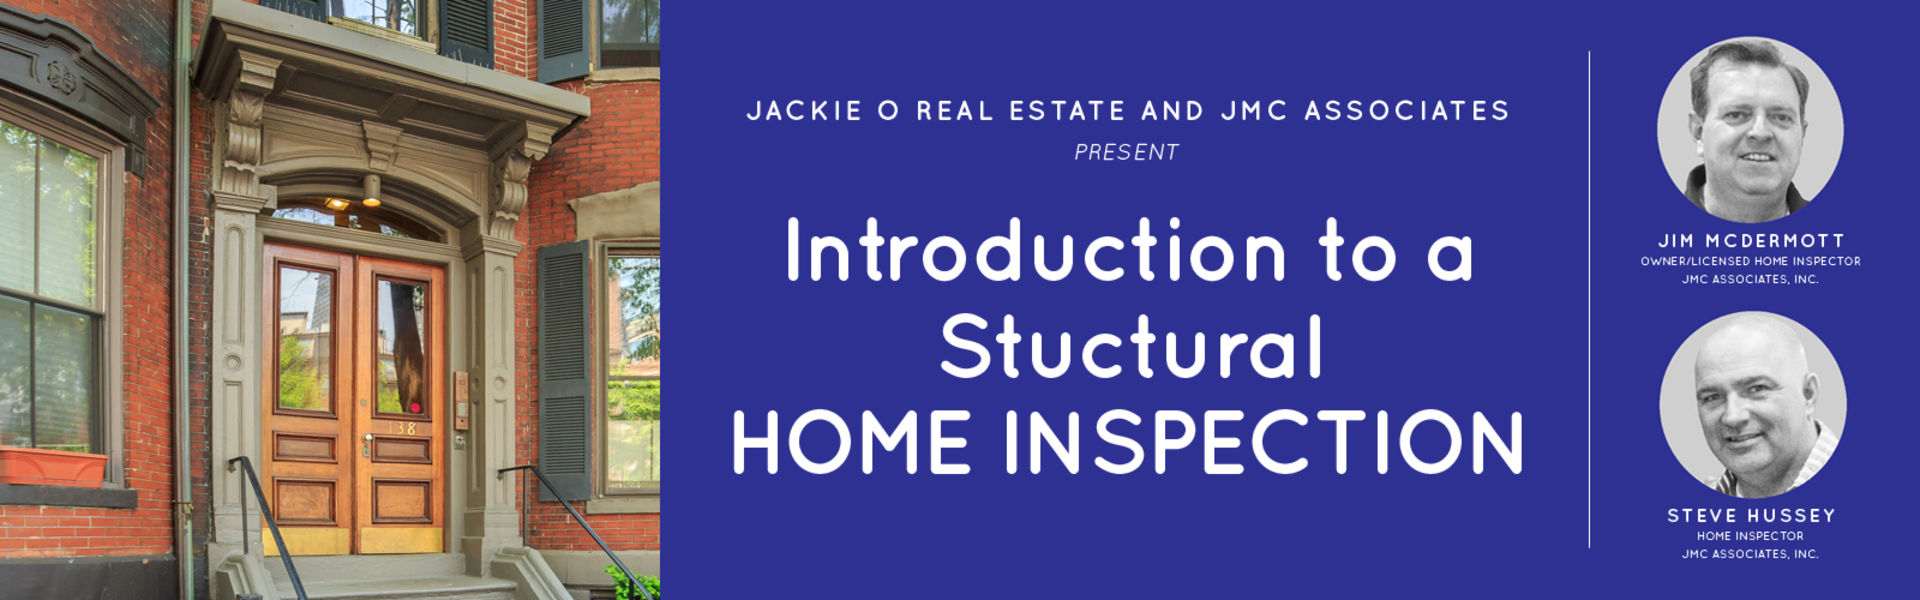 Introduction to a Structural Home Inspection